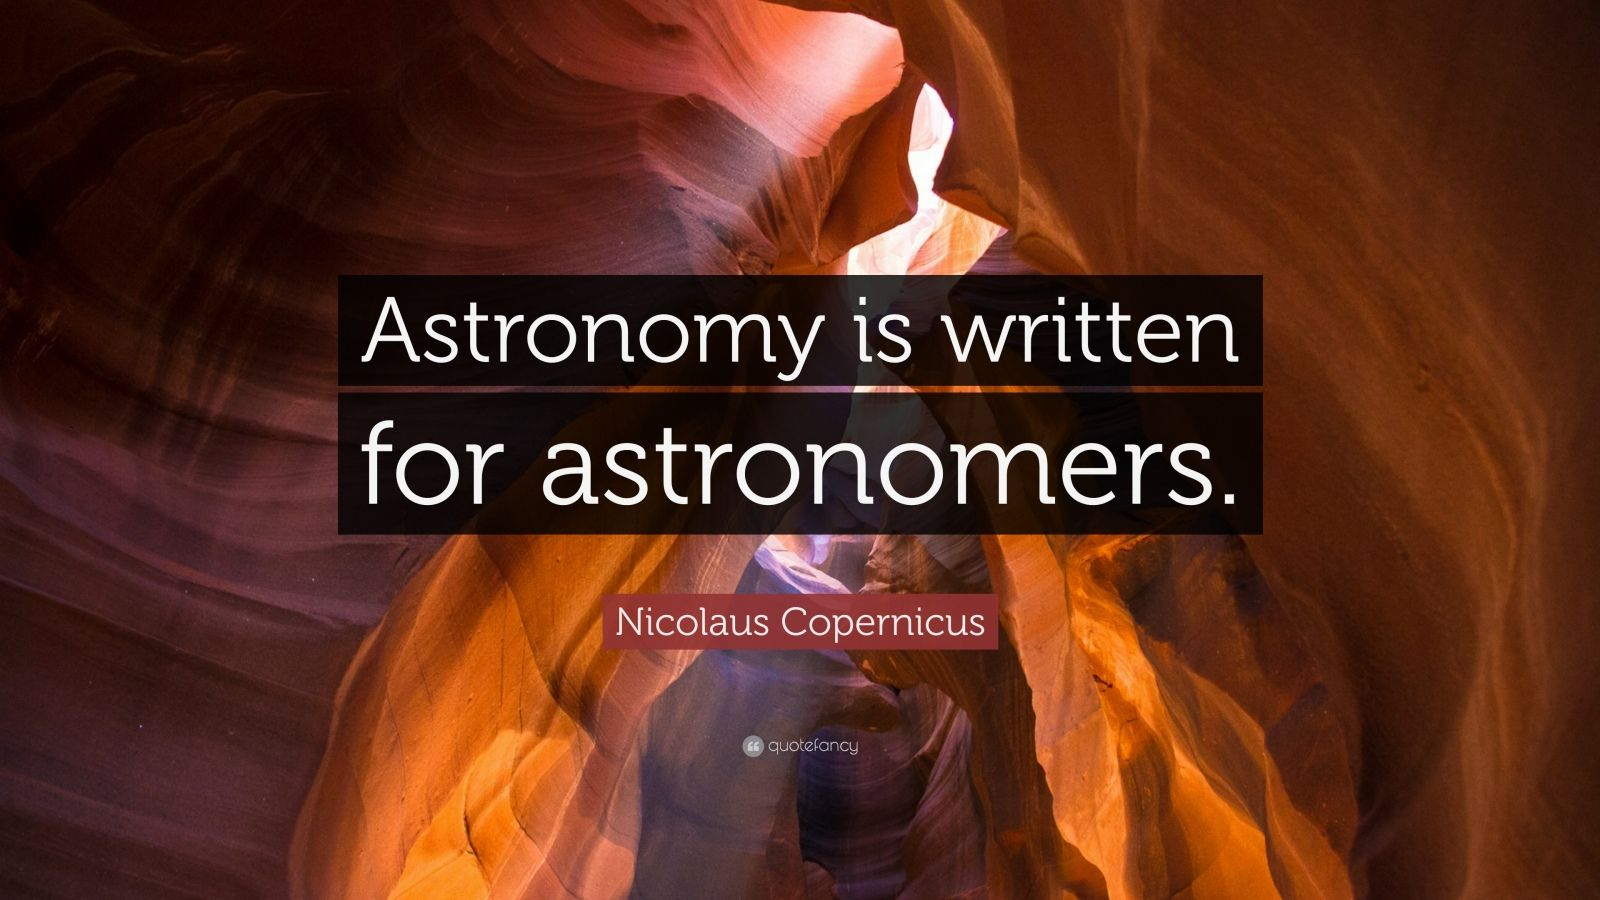 astroomy after copernicus The polish astronomer nicolaus copernicus was the founder of the heliocentric ordering of the planets, which at the time was a revolutionary idea that stated the earth and other planets revolve around the sun.